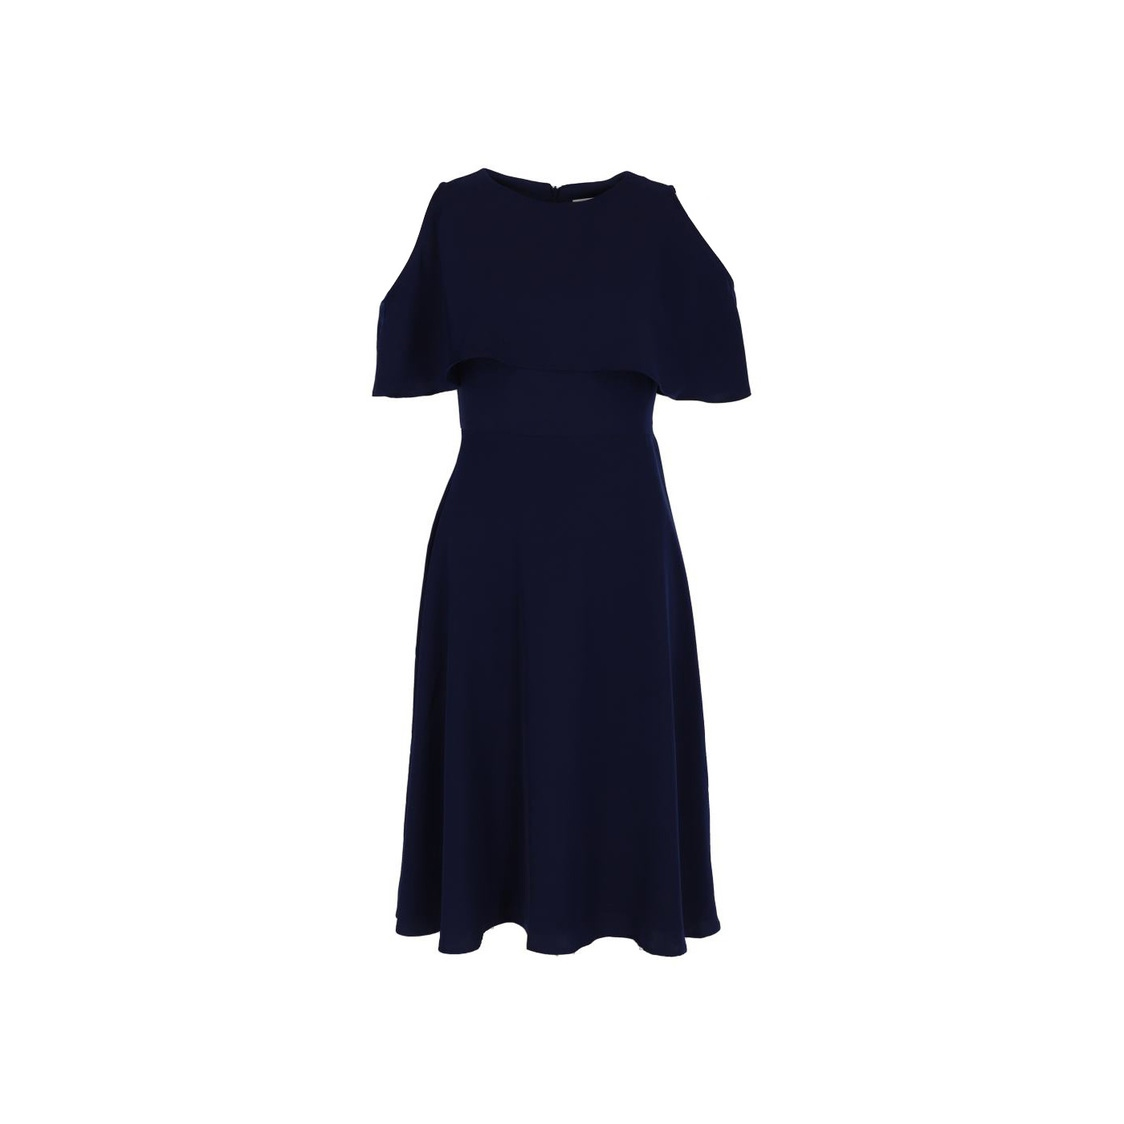 Cape Detail Fit  Flare Dress Navy Blue